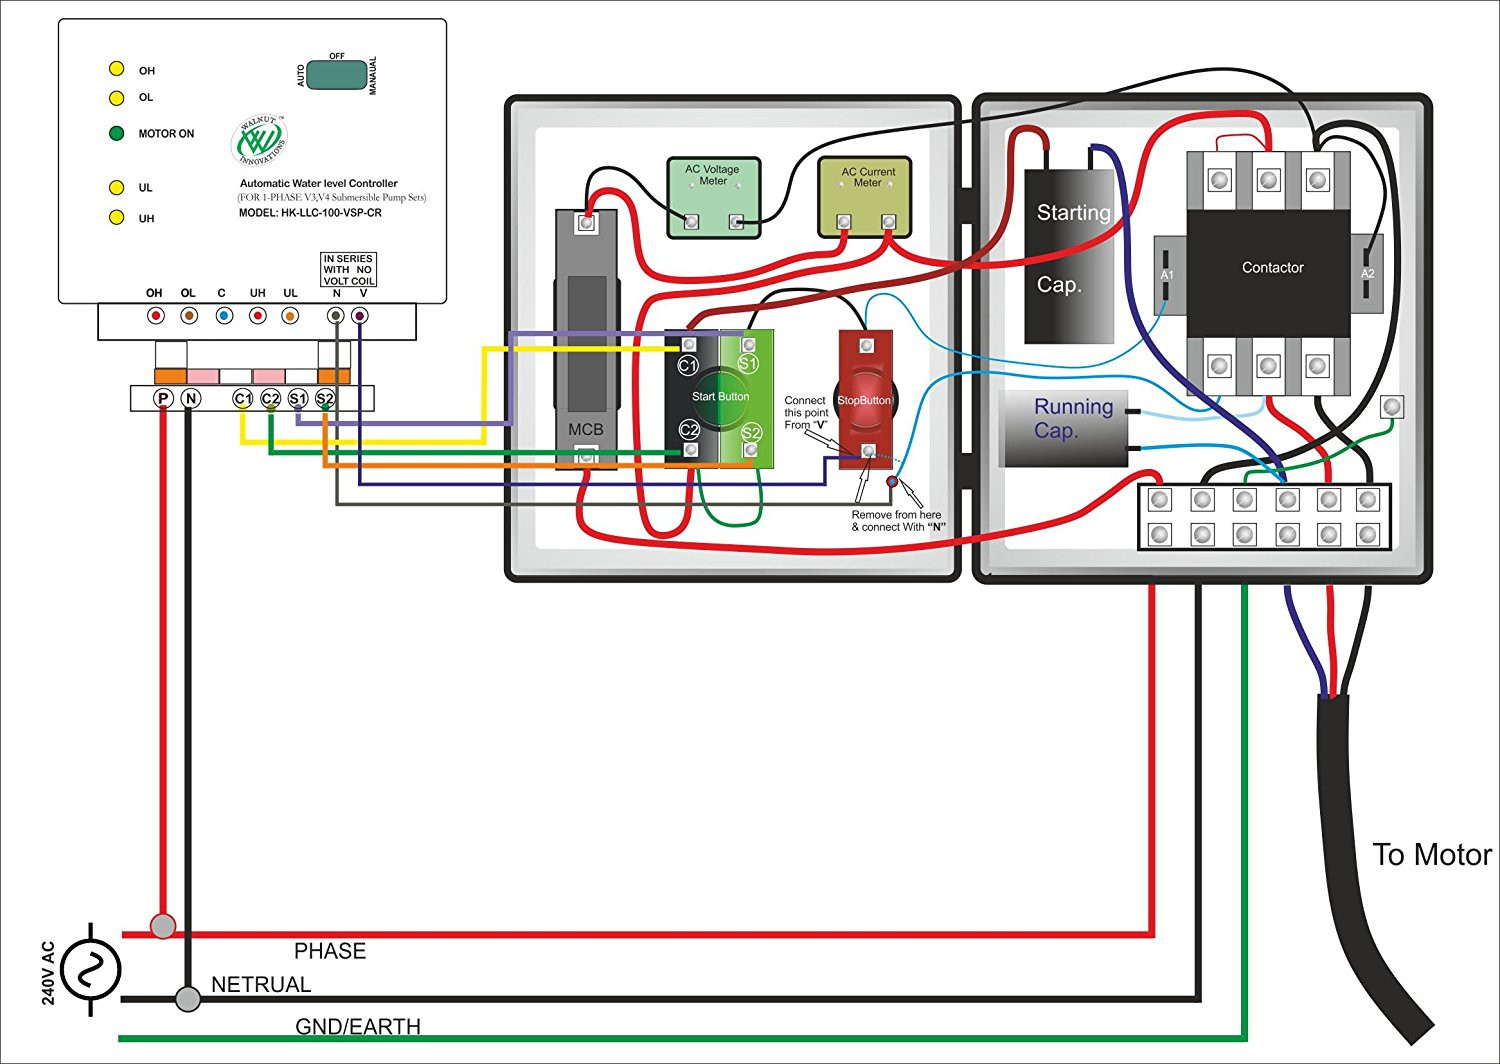 single phase submersible pump starter wiring diagram Download-Single Phase Submersible Pump Starter Wiring Diagram Water 19-s